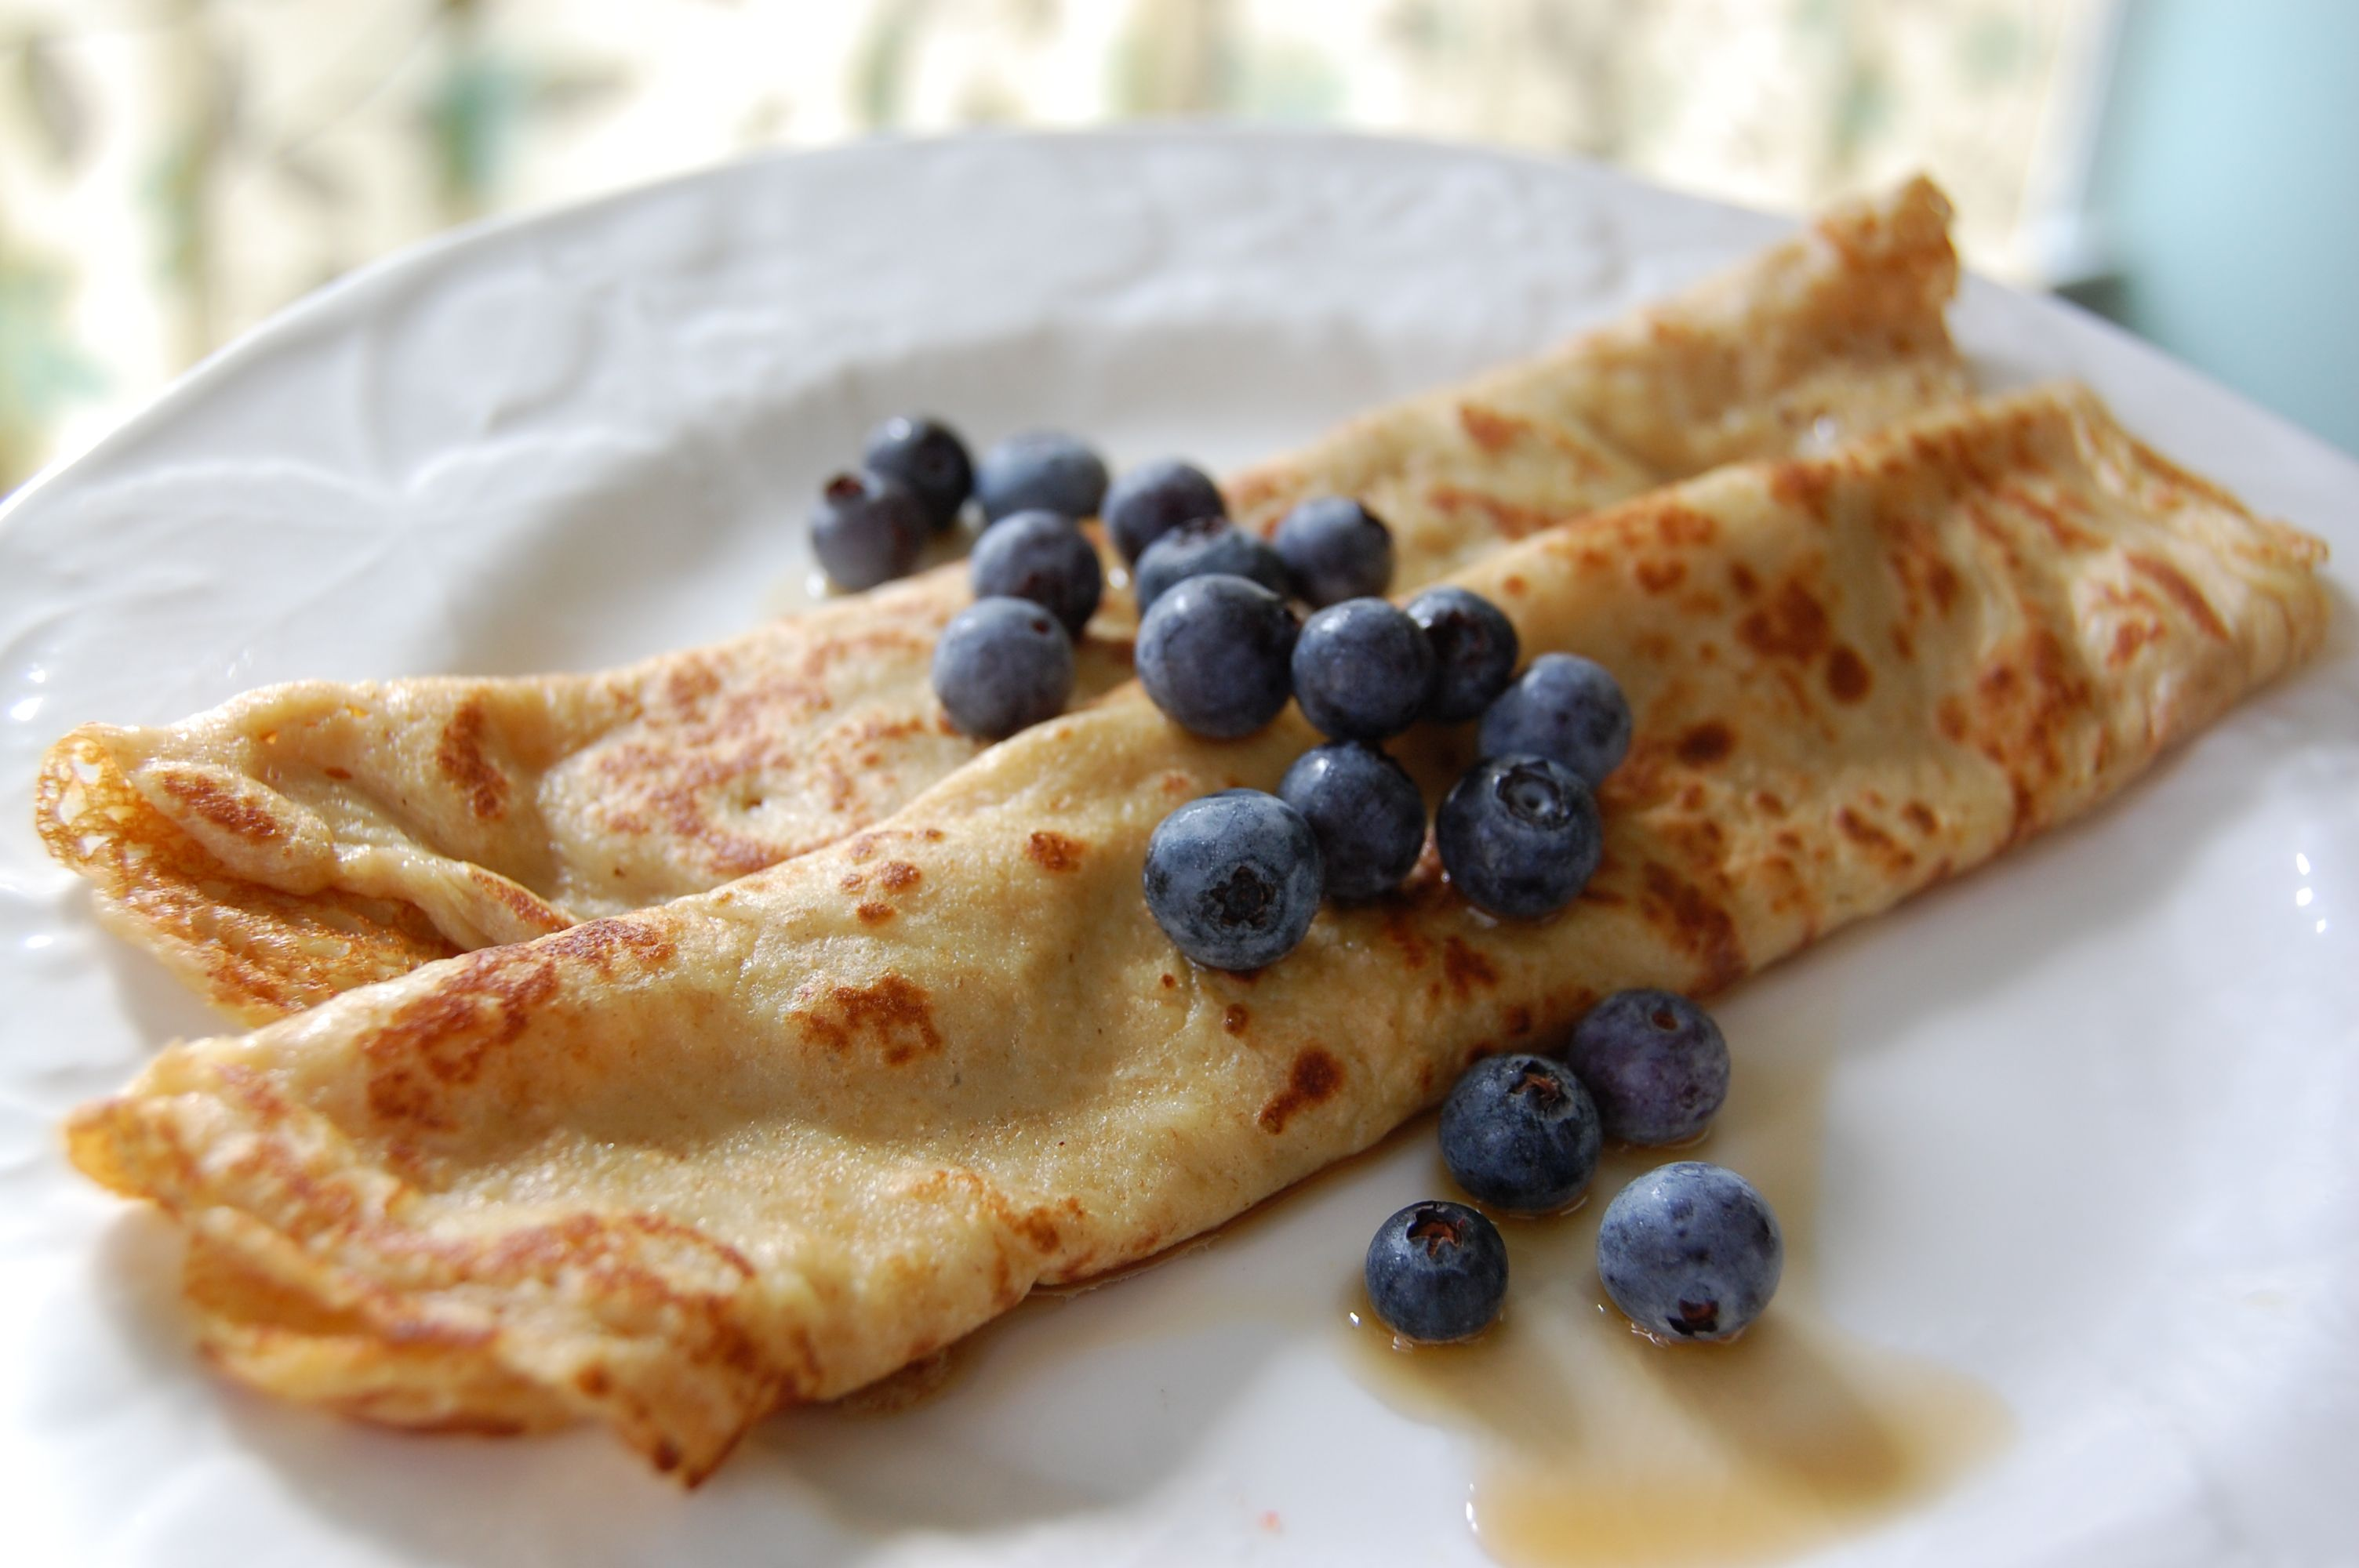 Recipe crepes for breakfast or dessert the food illusion for A french cuisine